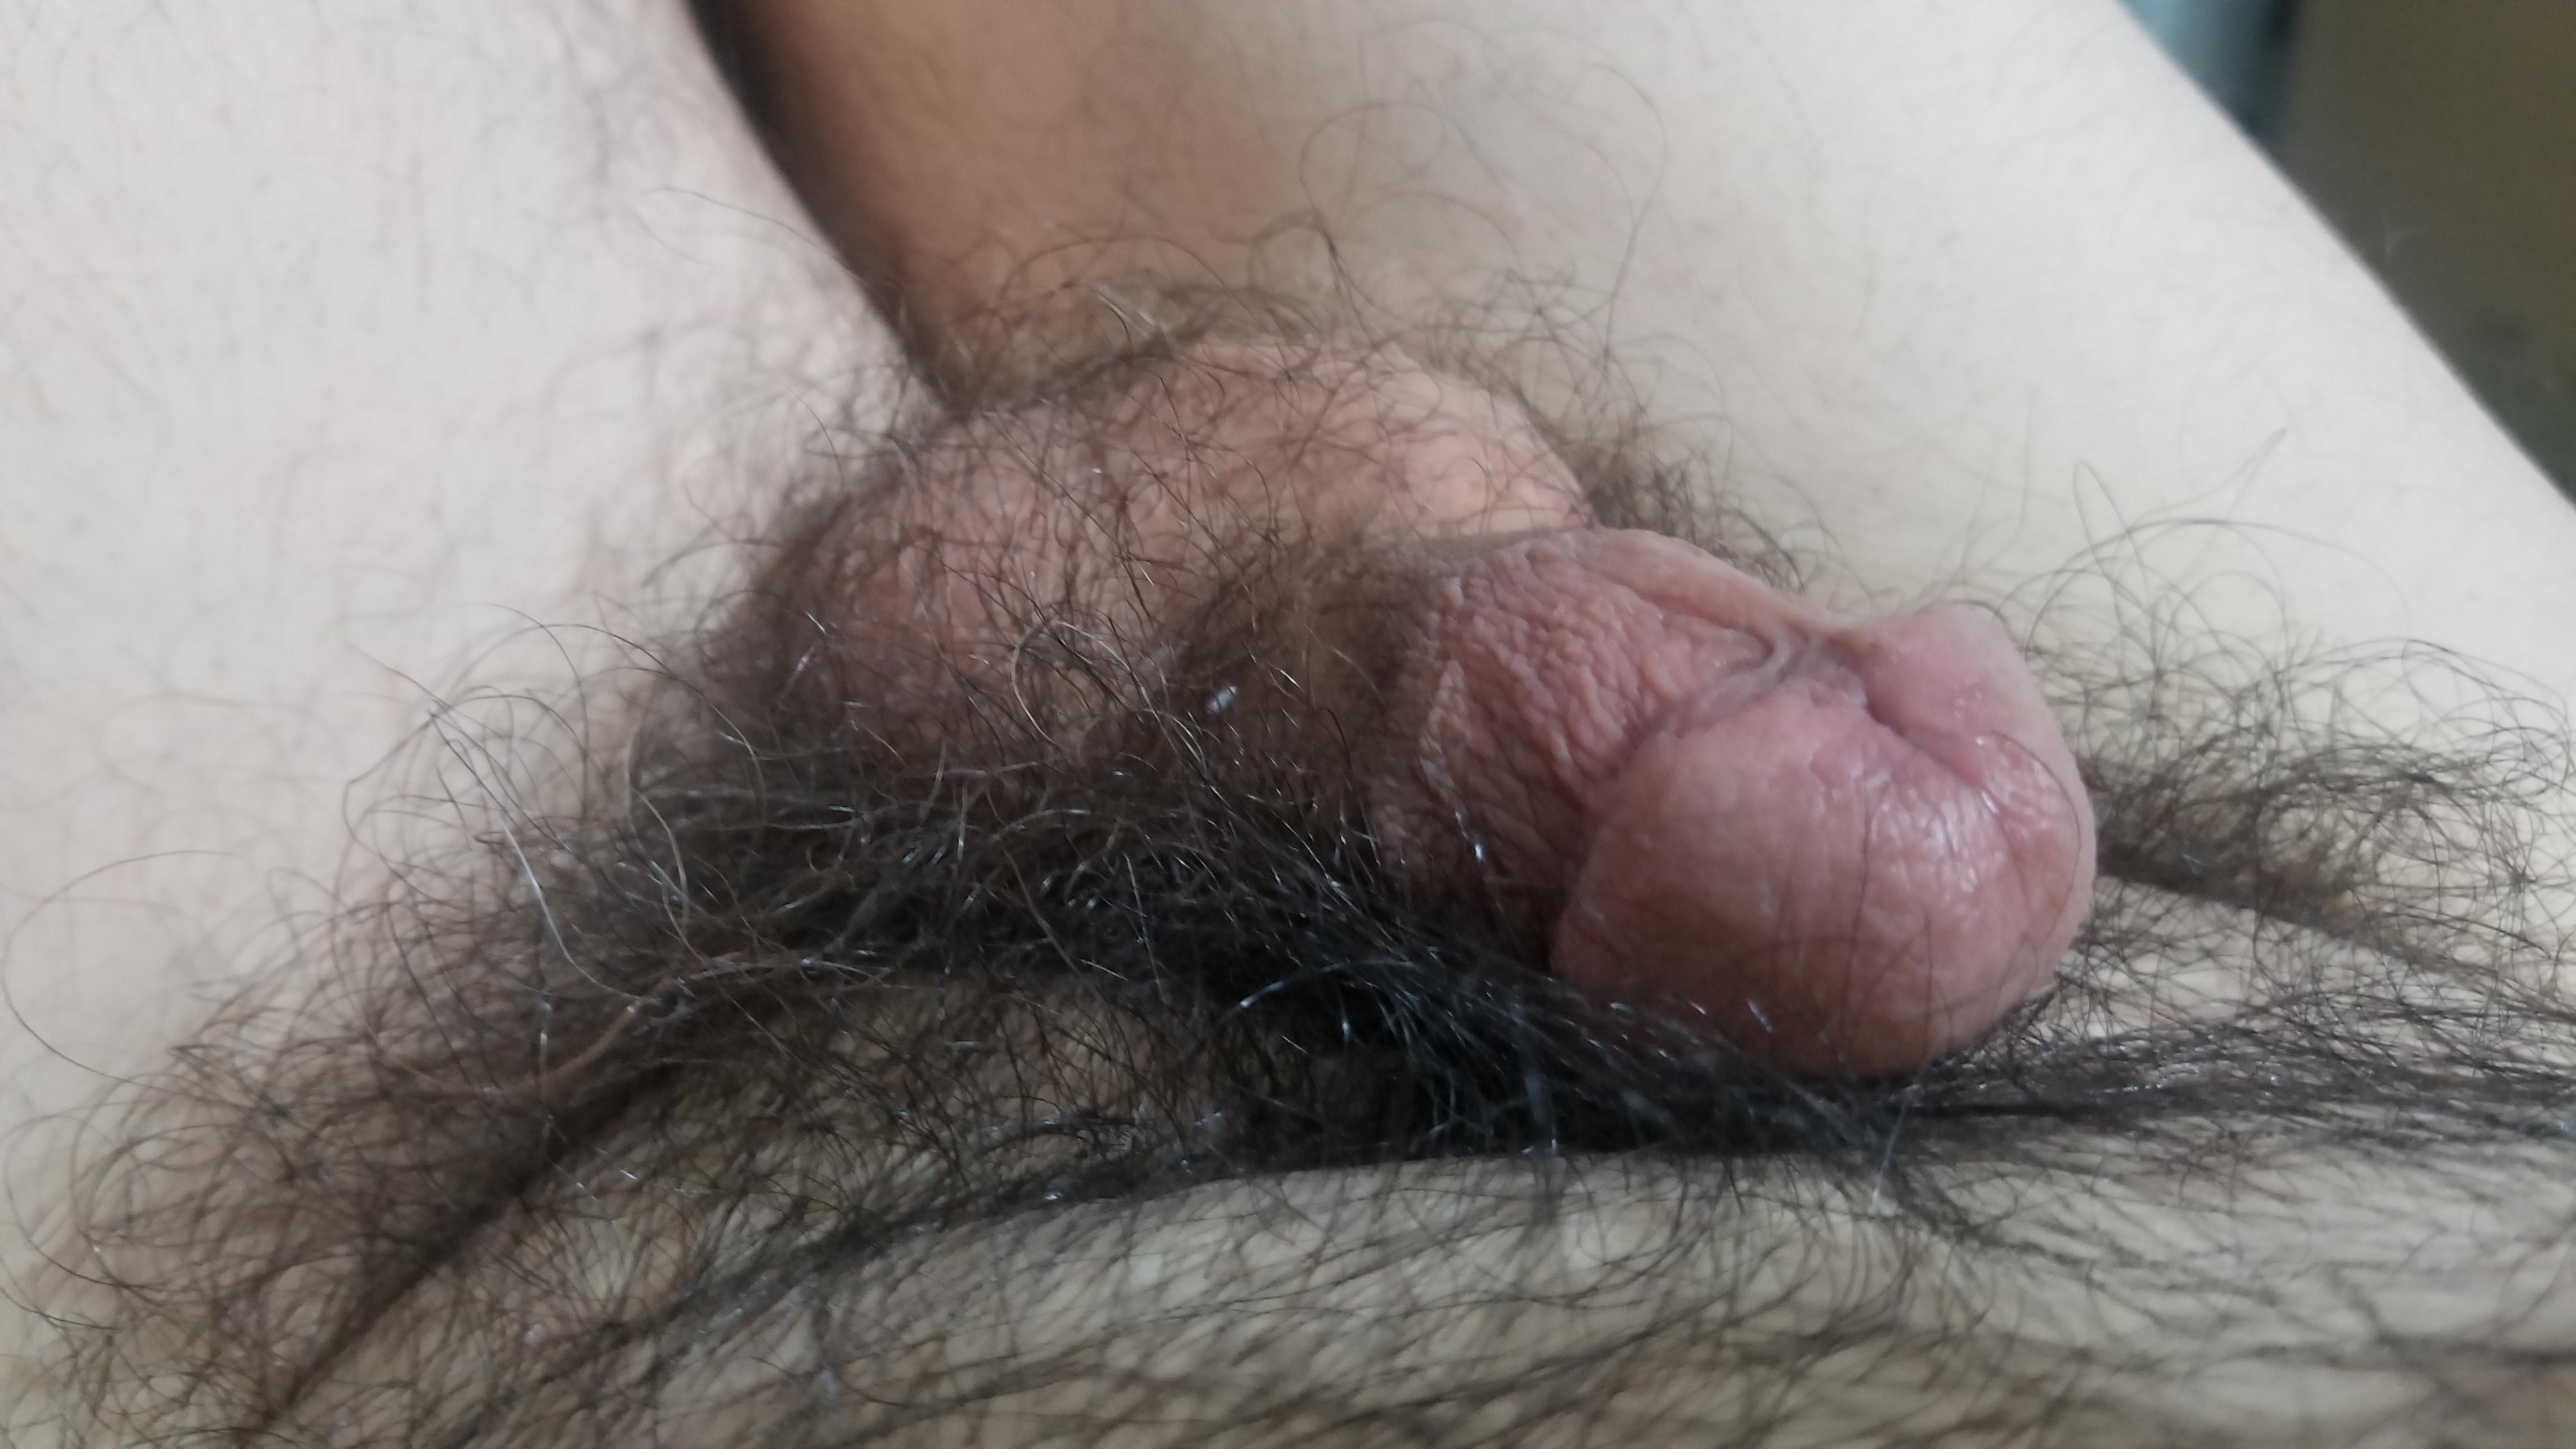 Small hairy dick